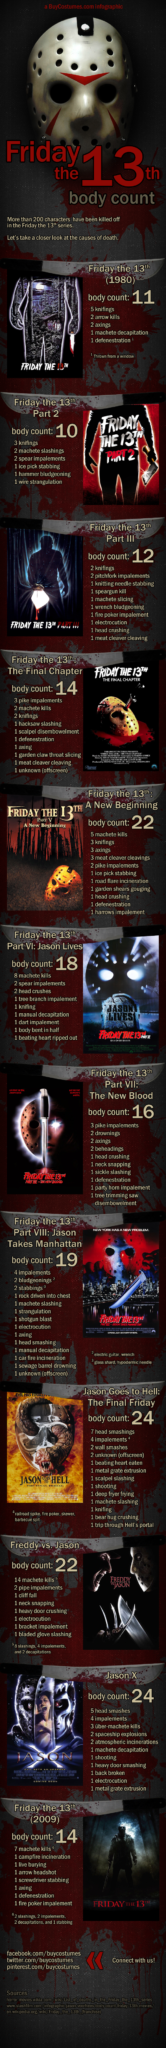 friday-the-13th-body-count